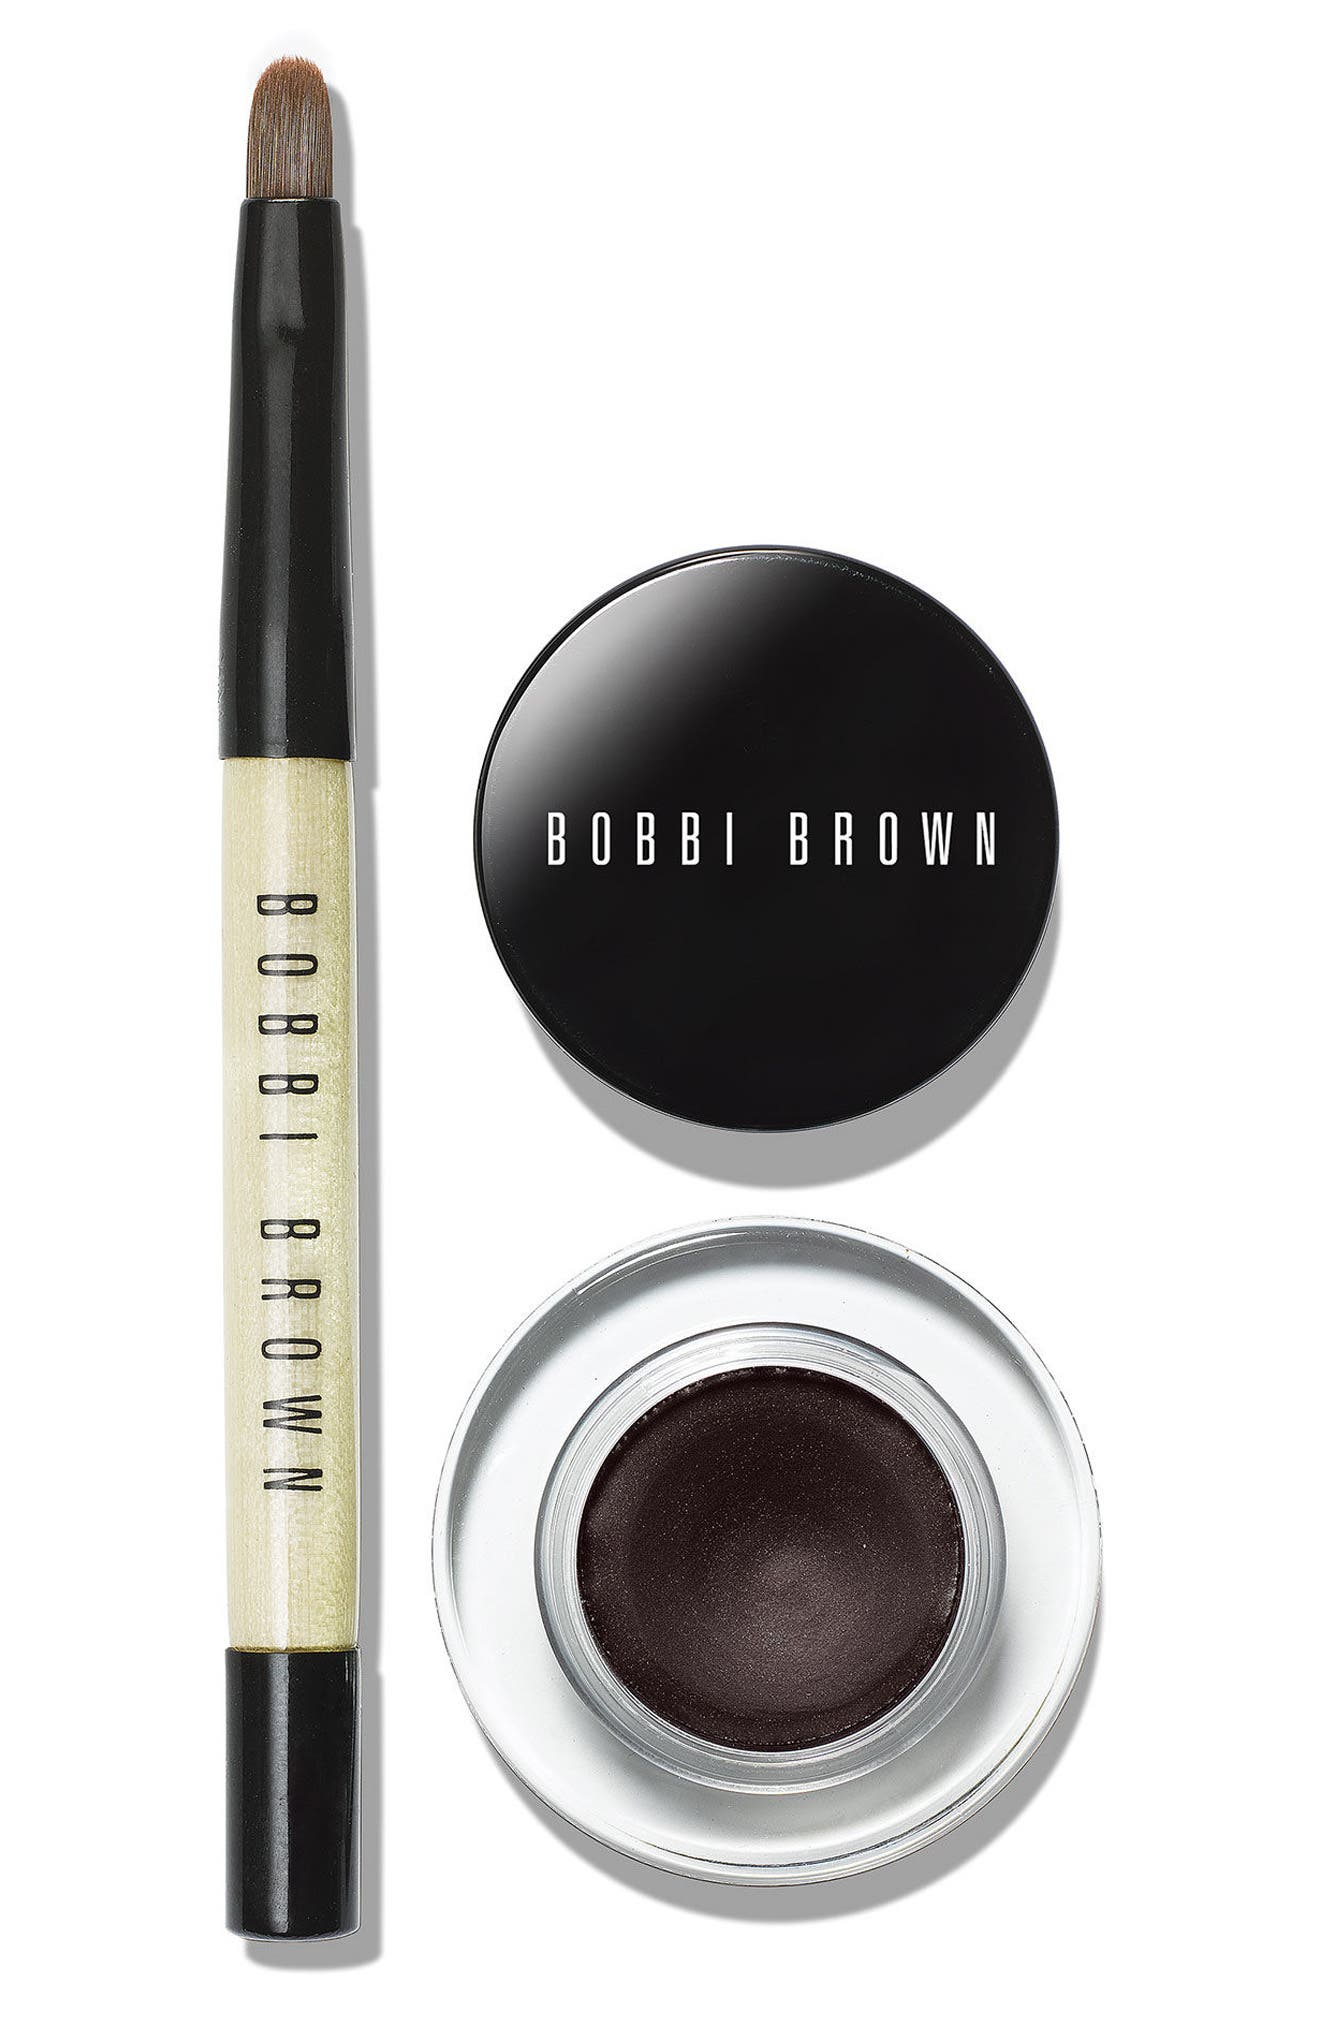 Bobbi Brown Bobbi to Go Mini Long-Wear Gel Eyeliner Duo ($27 Value)